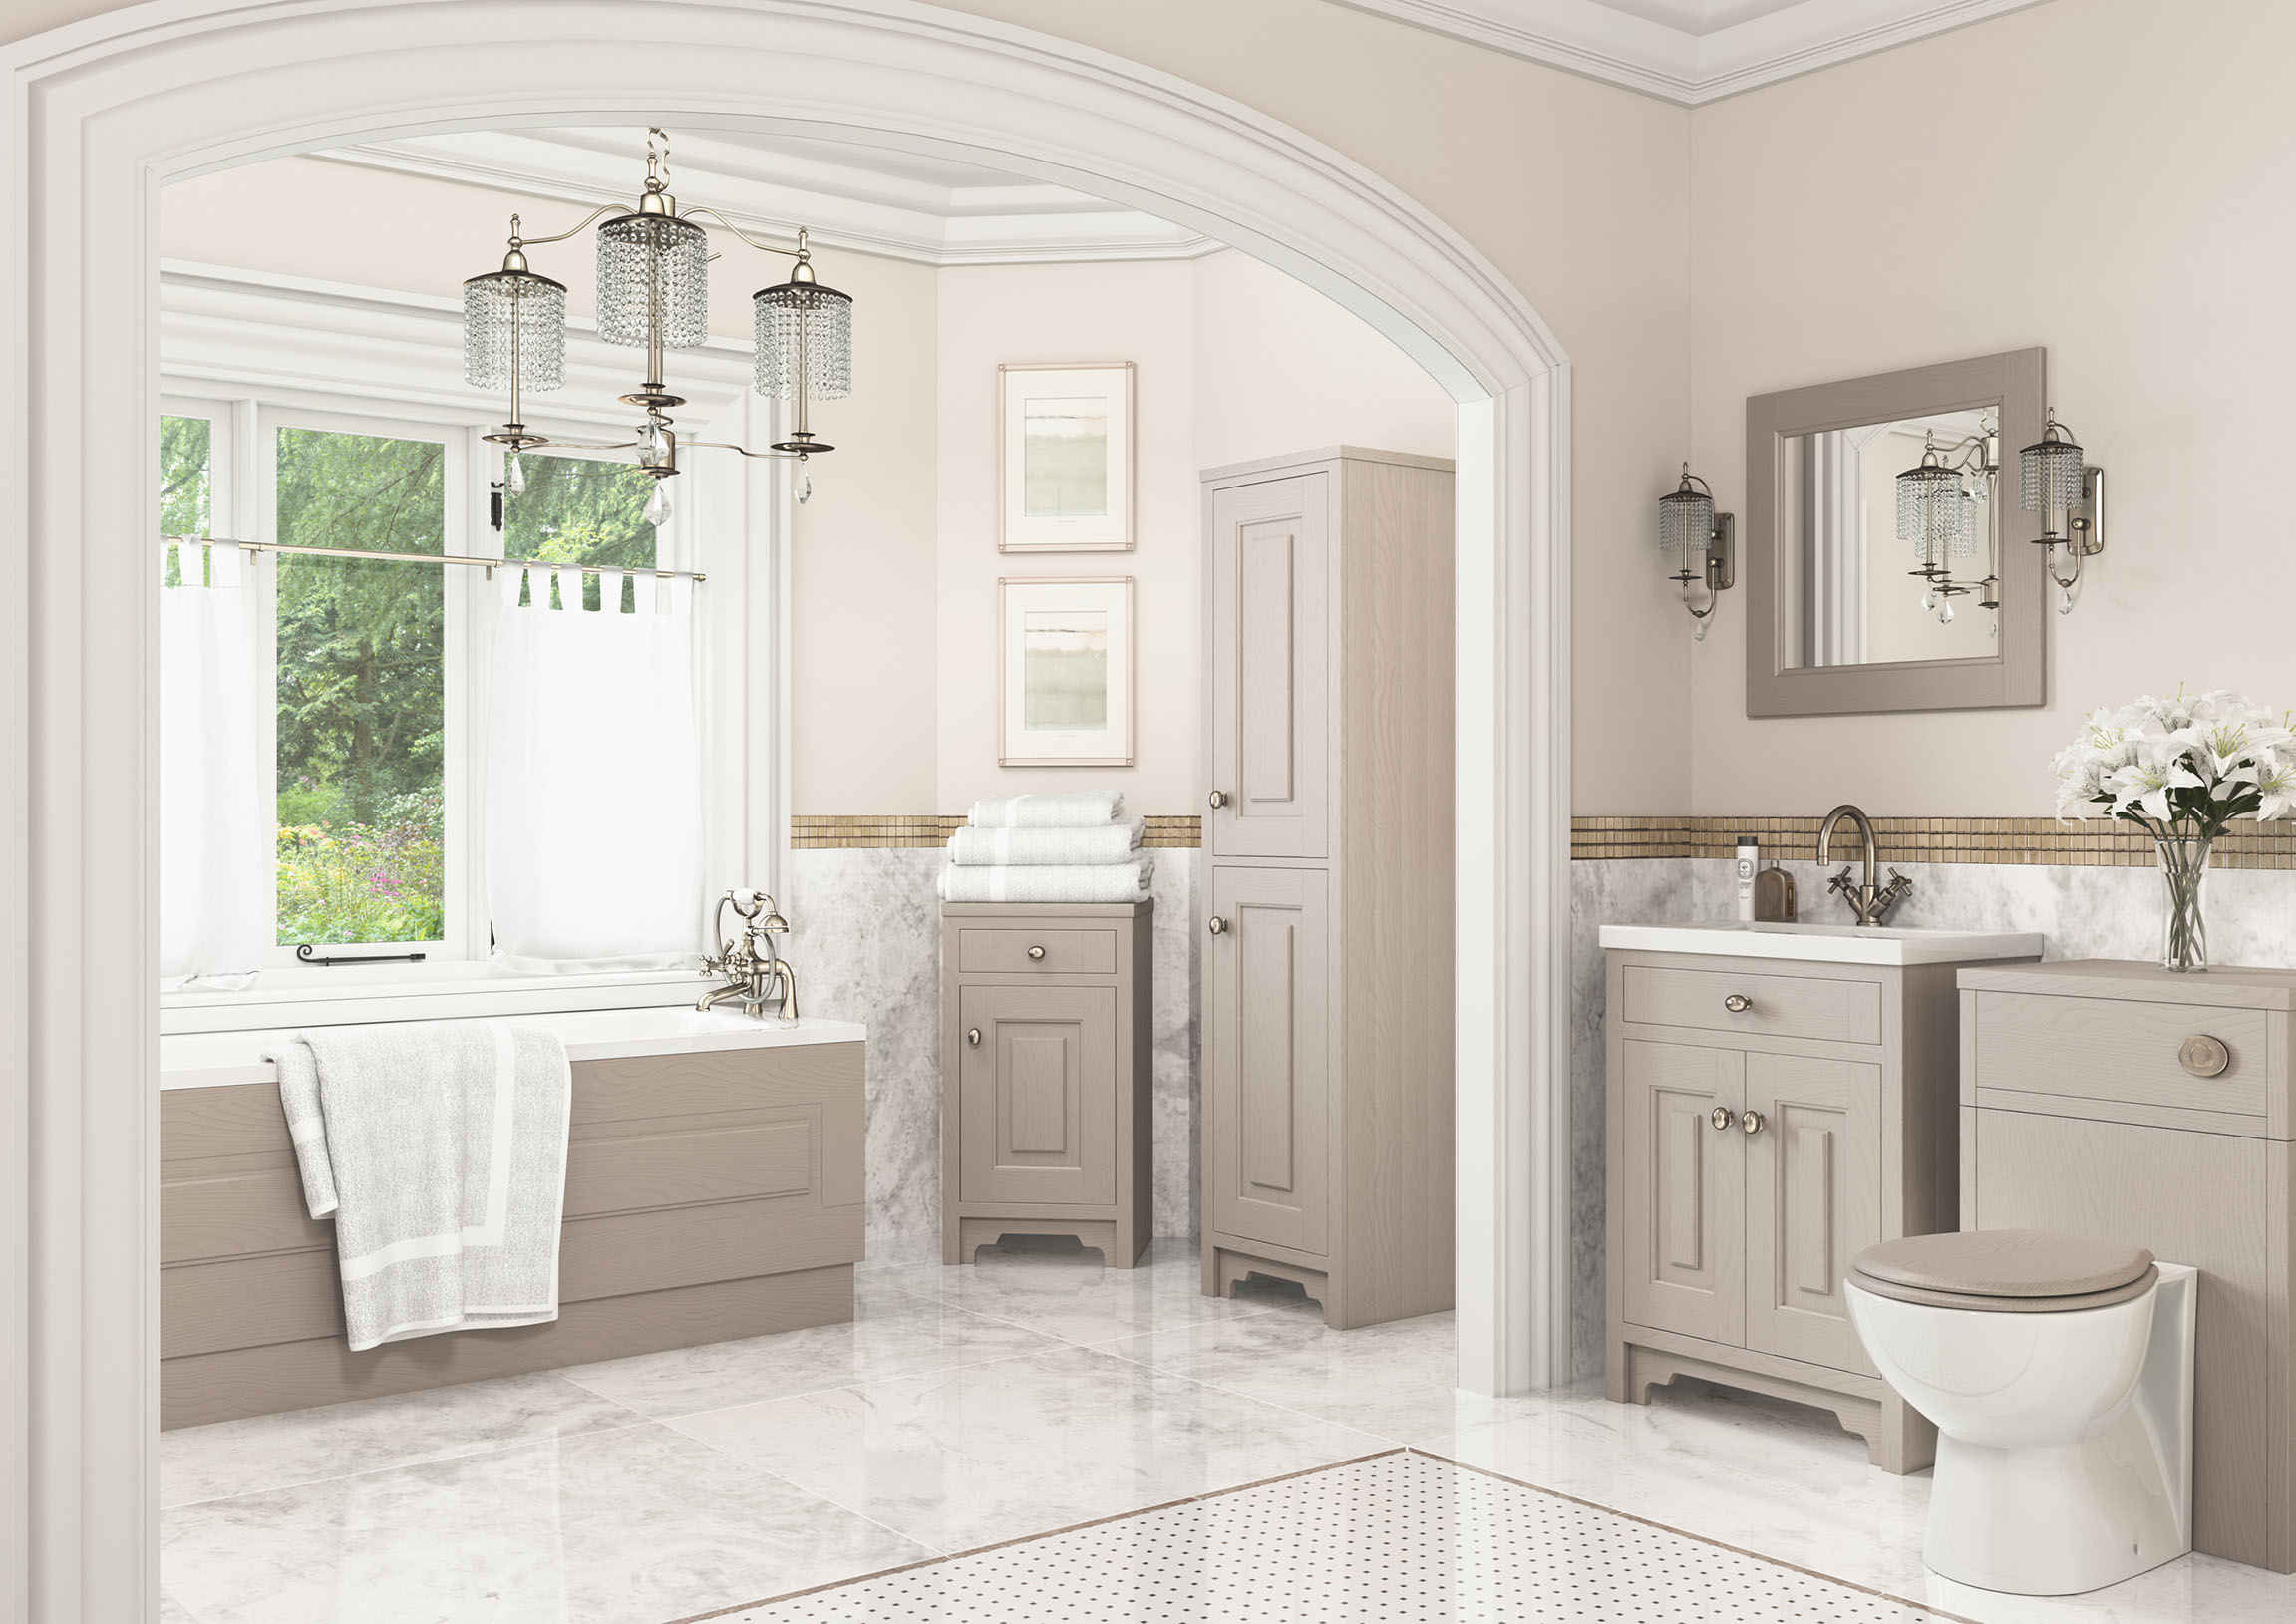 Ordinaire A Selection Of Our Amazing Products, Please Download Our Brochure To View  All Products Available.